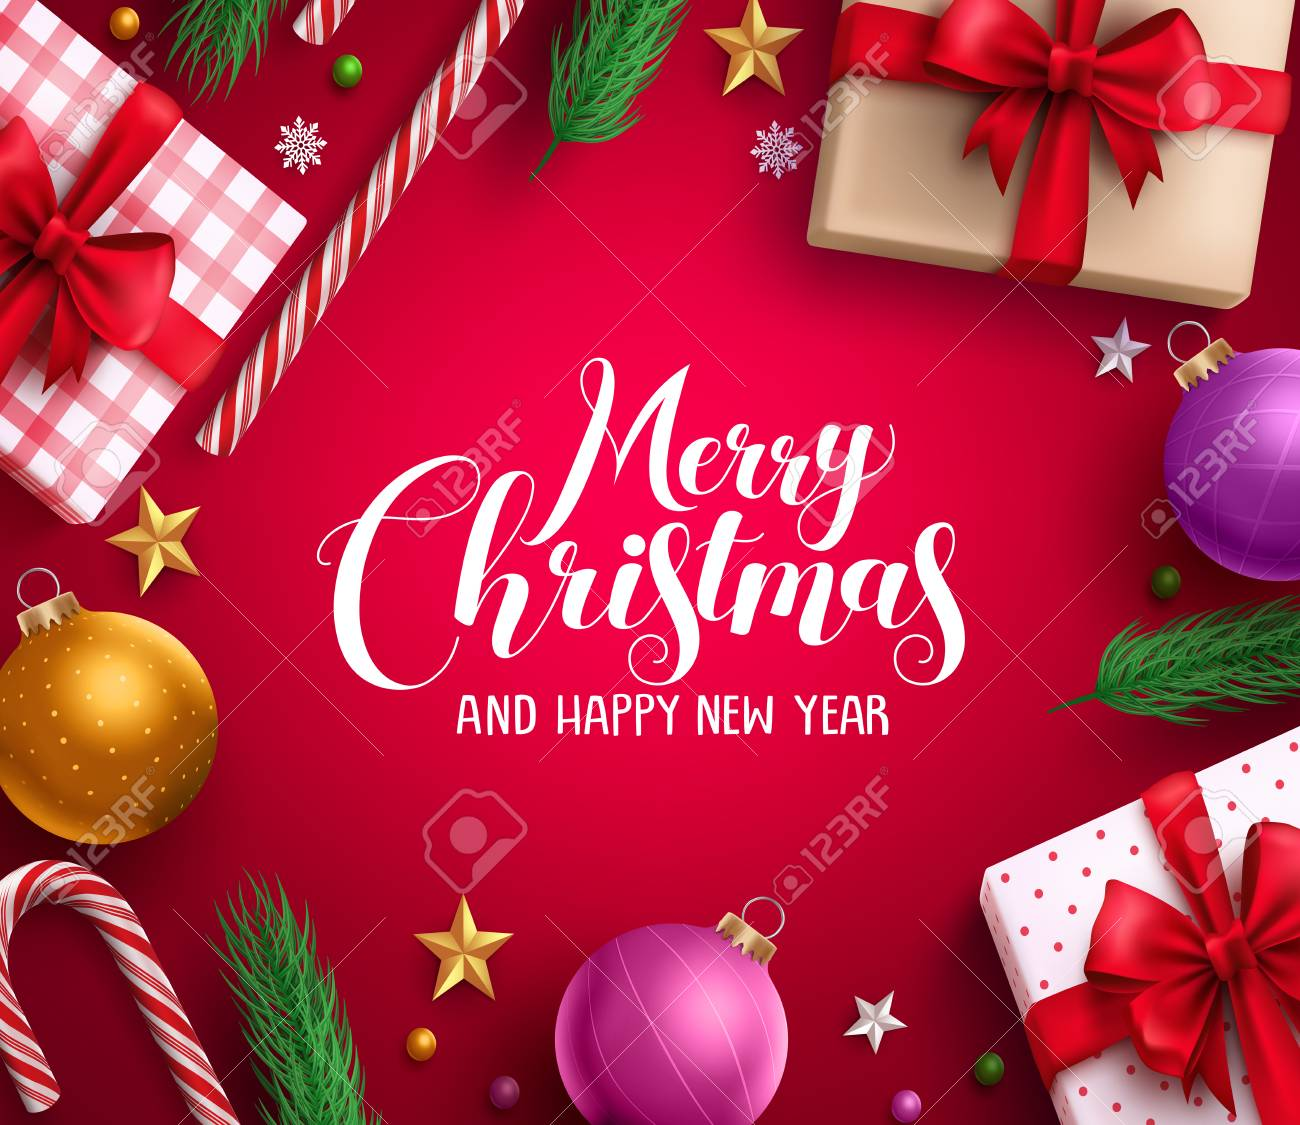 Merry Christmas Card.Christmas Card Vector Background With Merry Christmas Greeting